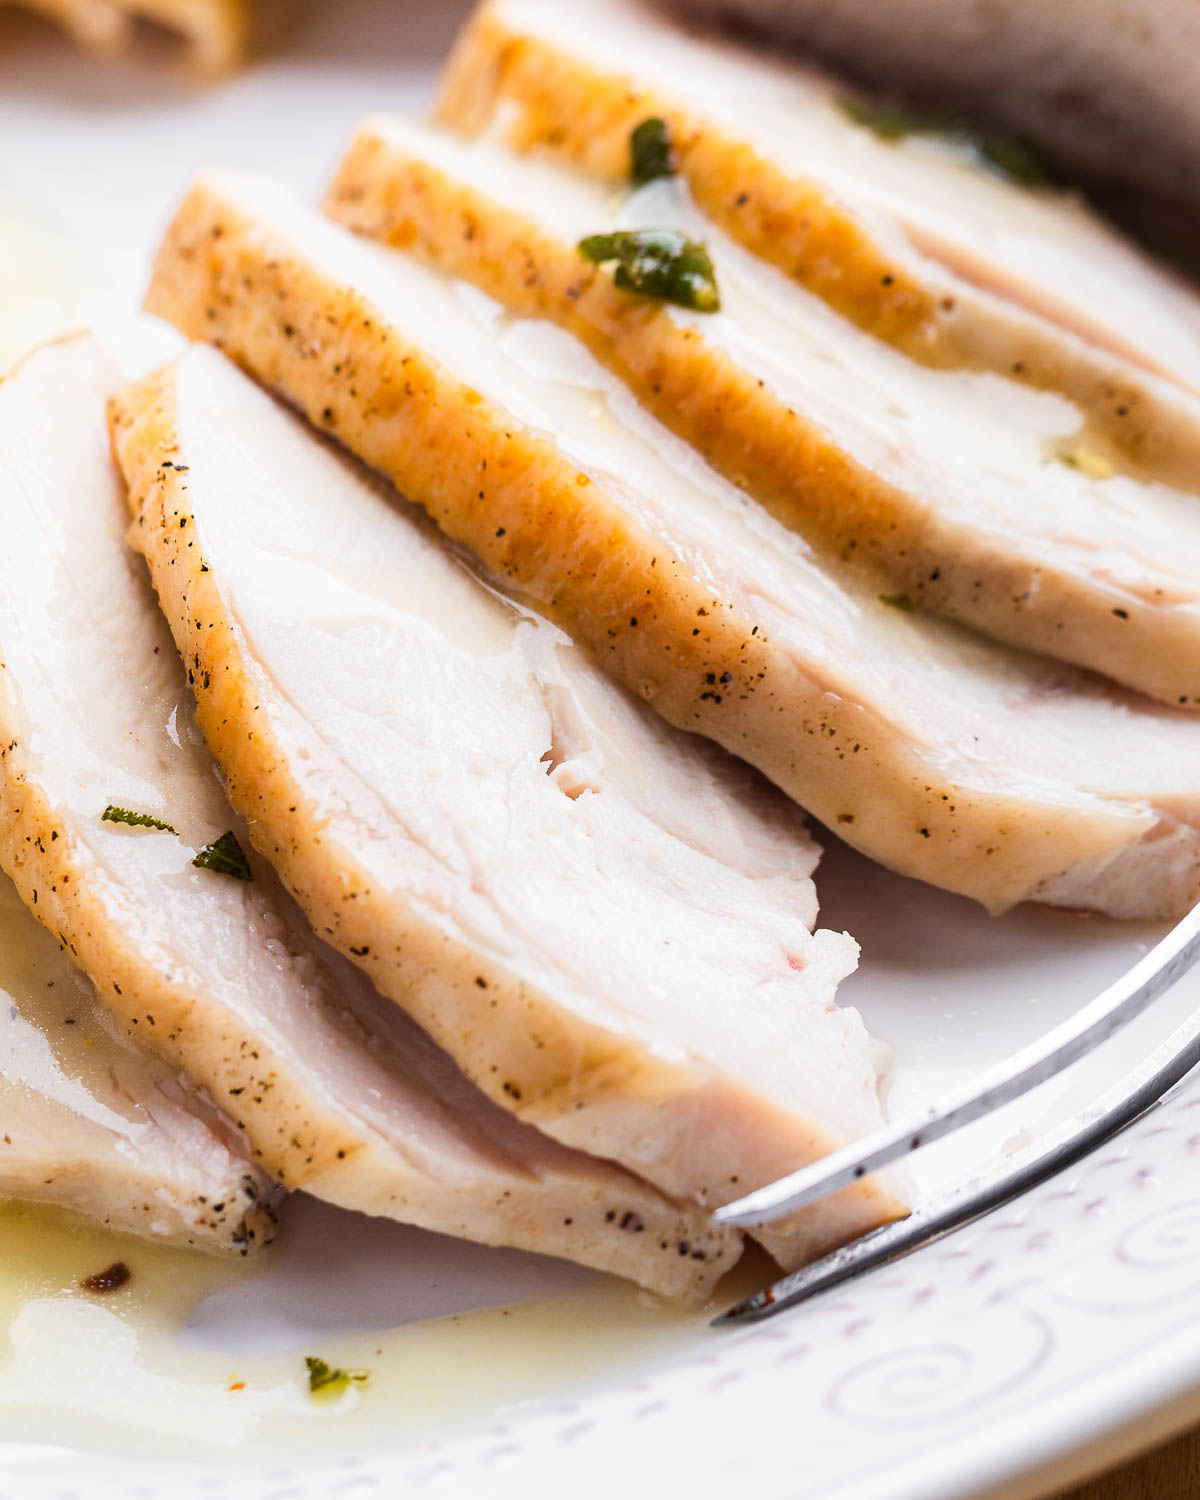 Close up shot of sliced turkey breast pieces.